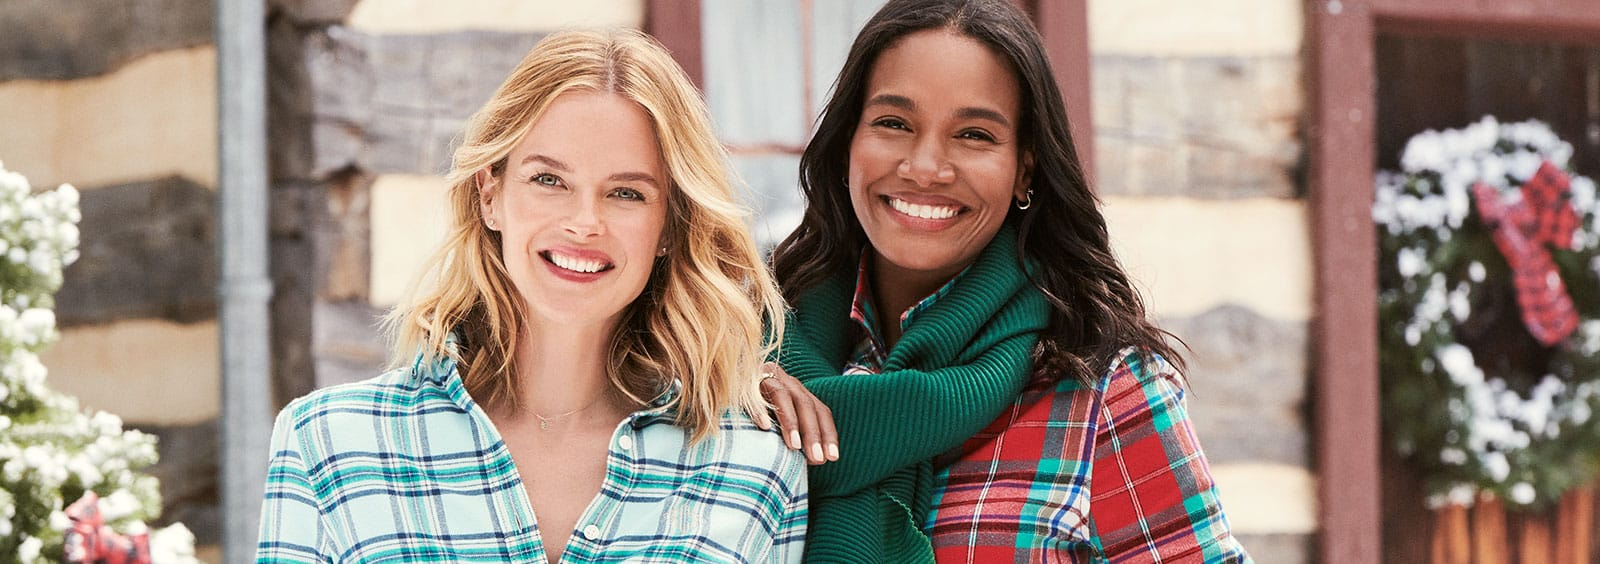 Keep Your Outfits Classy This Year With These Flannel Shirts